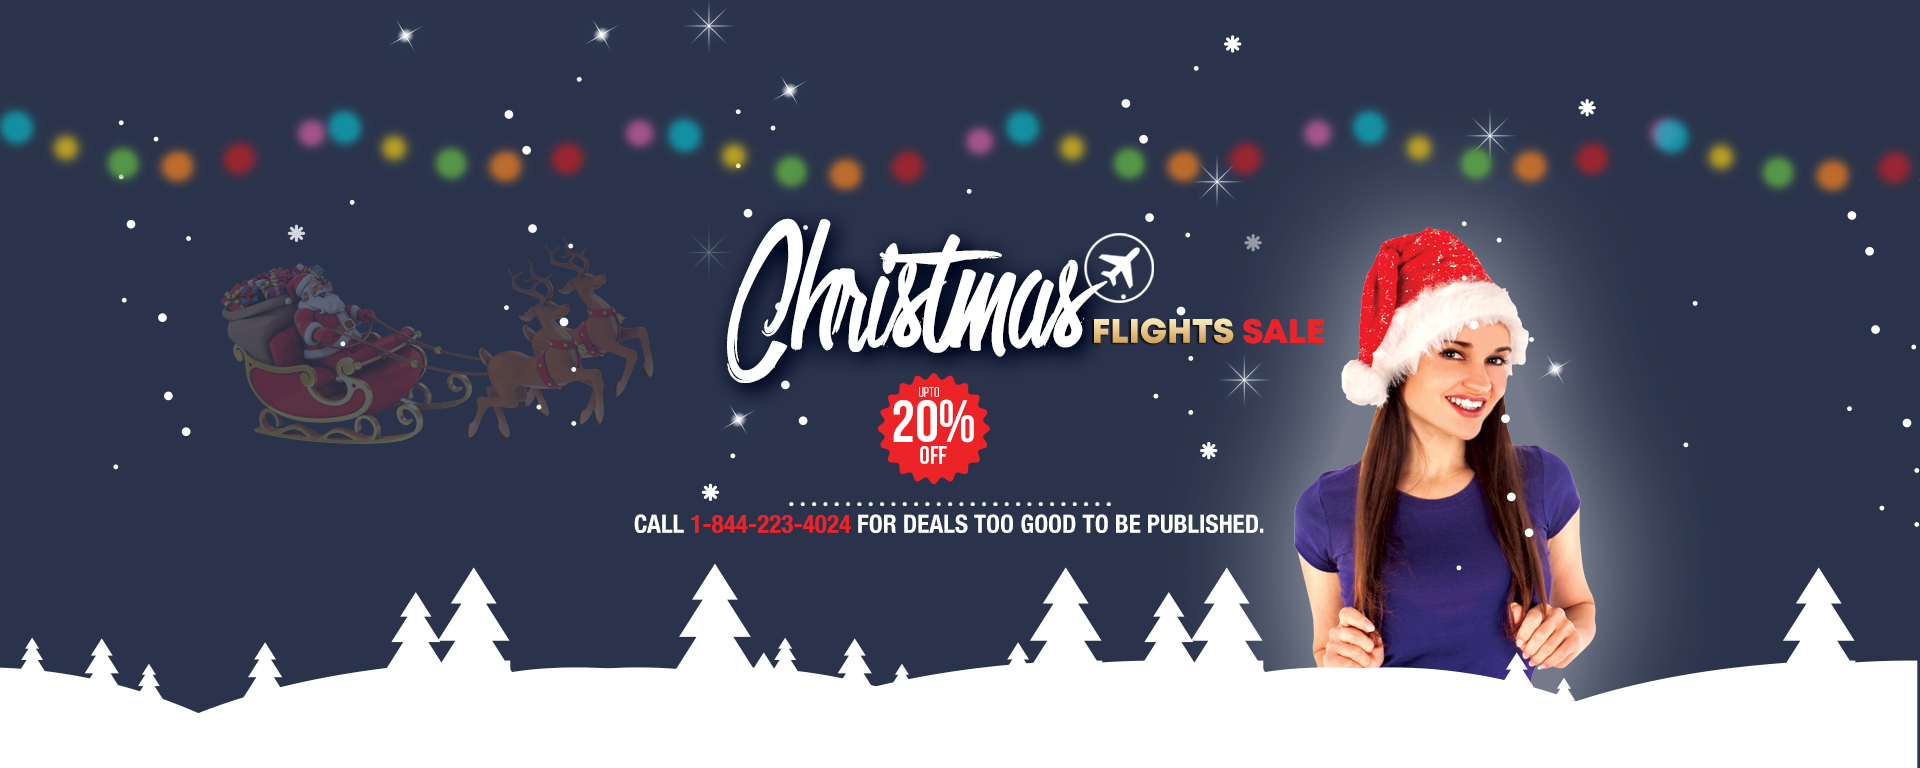 Exclusive christmal special cheap flights deals at traveljunctionus.com and book lowest air flight